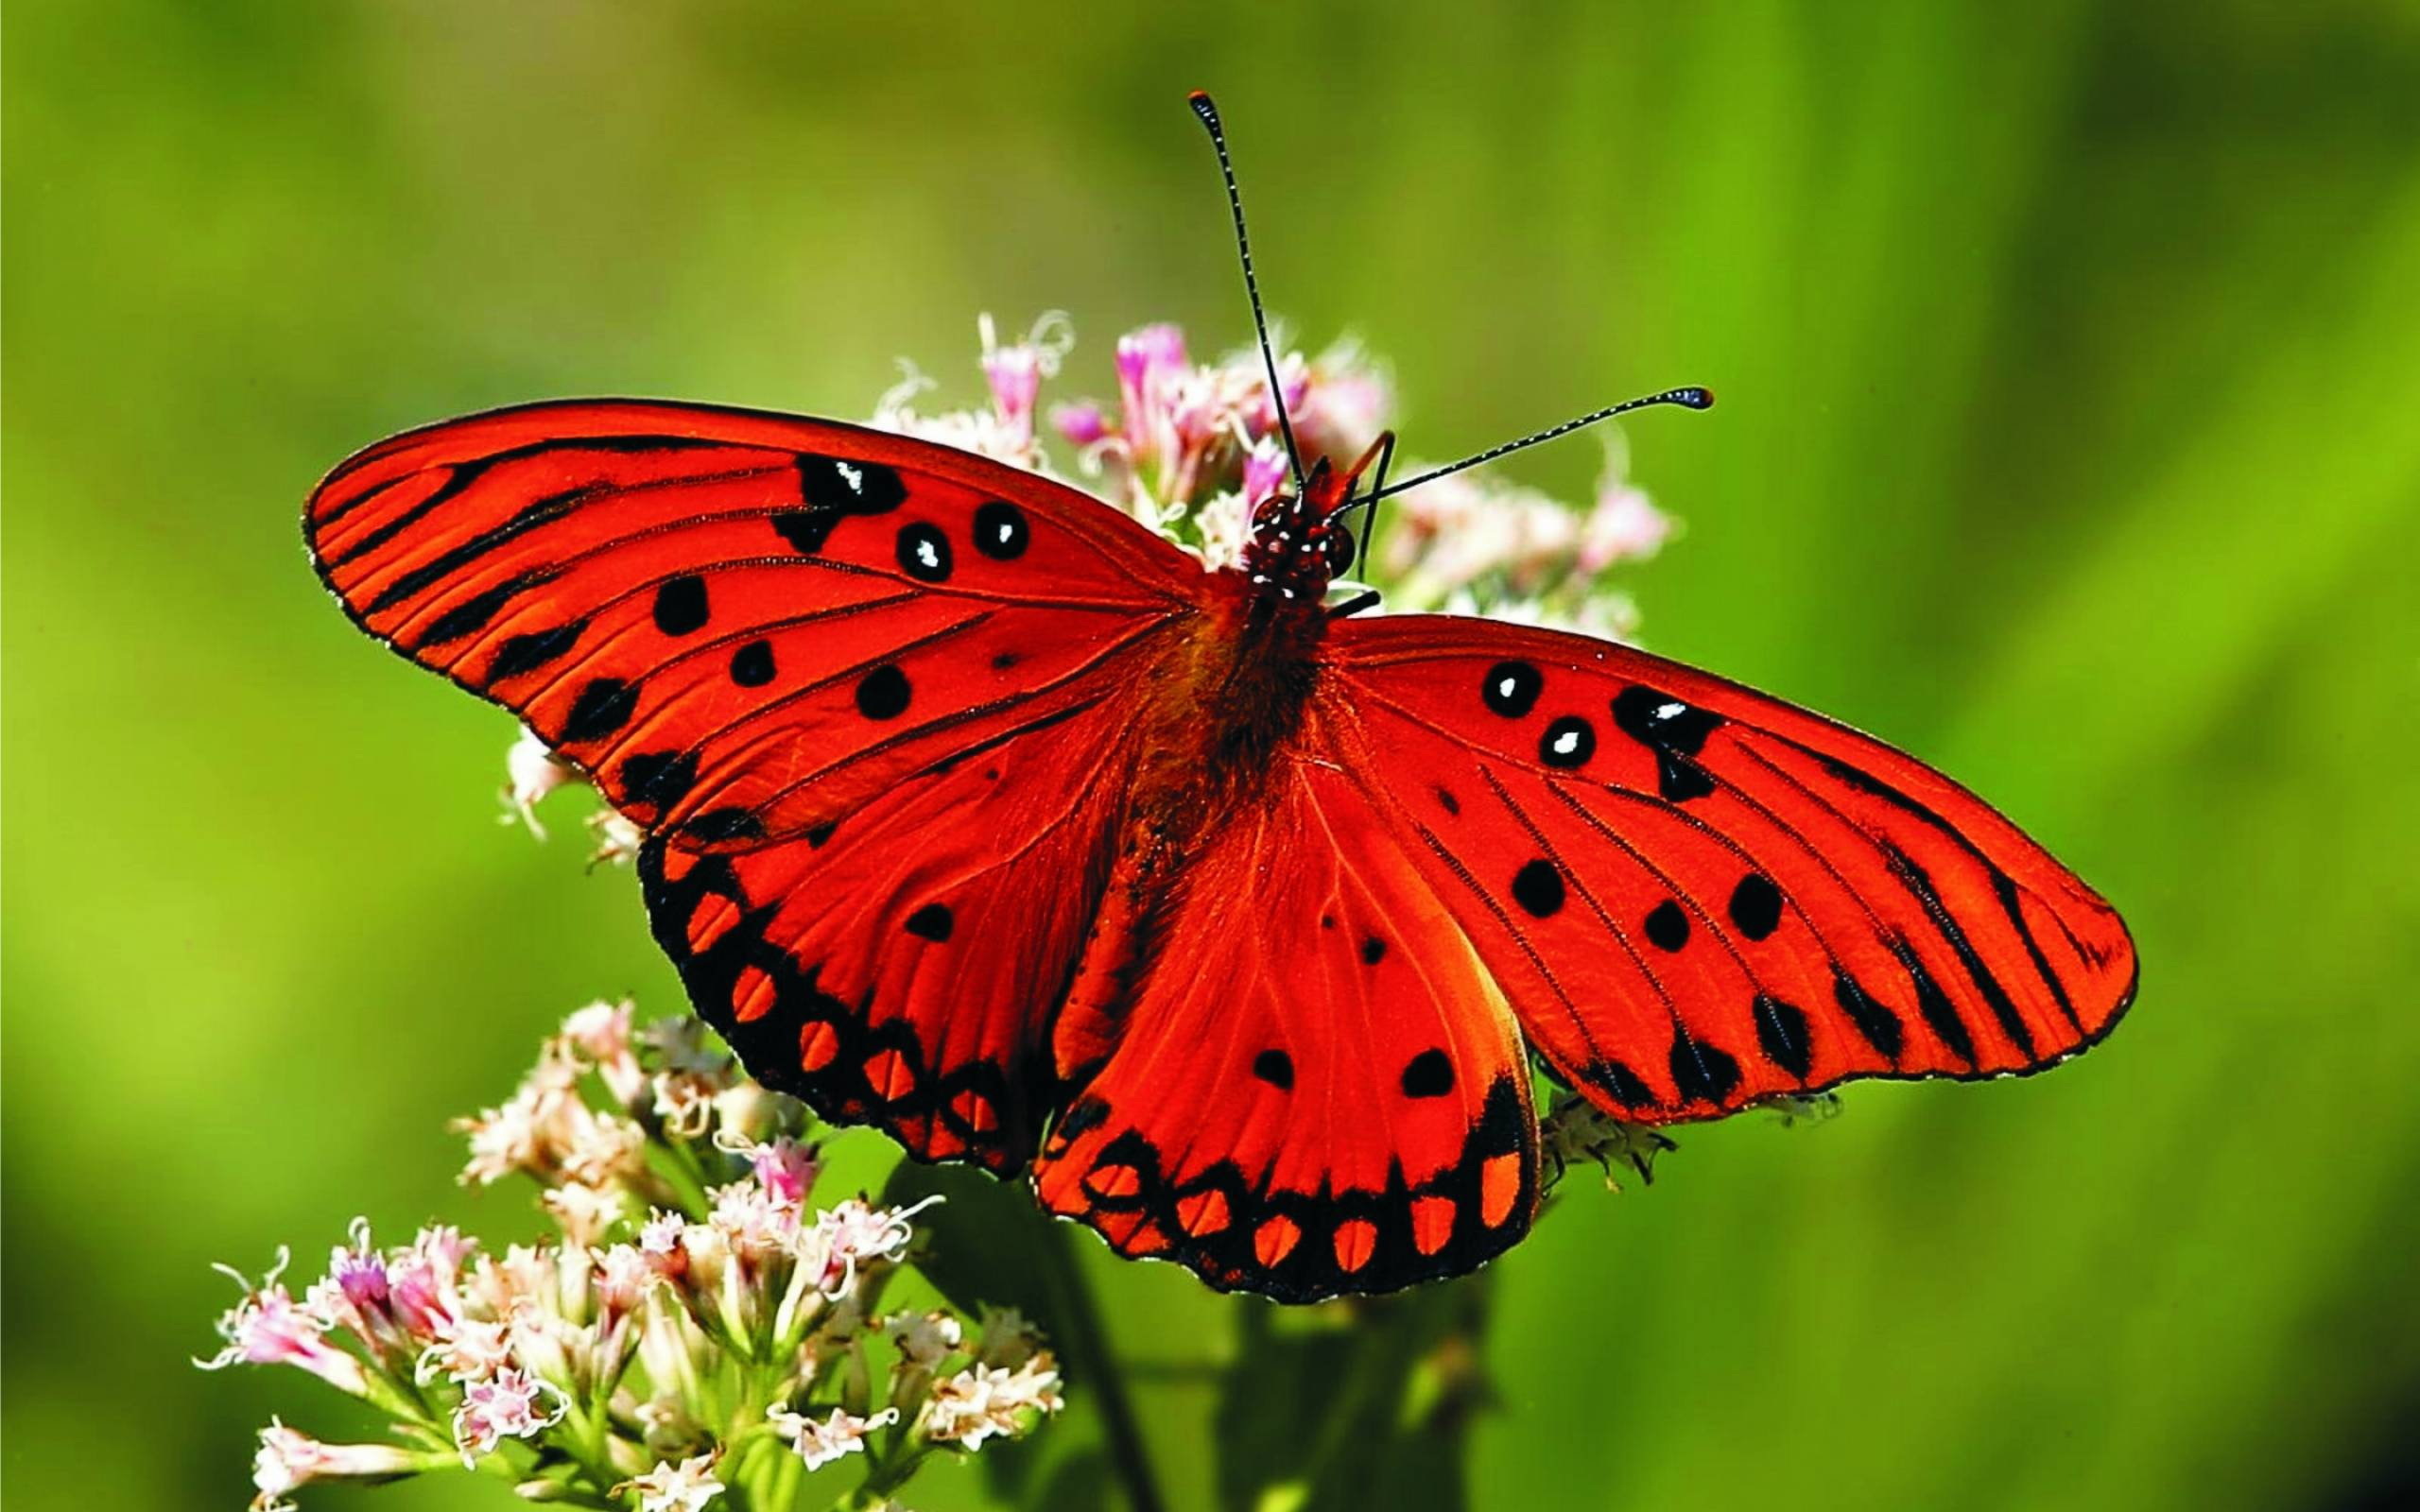 Red Butterfly on a Flower 350.91 Kb